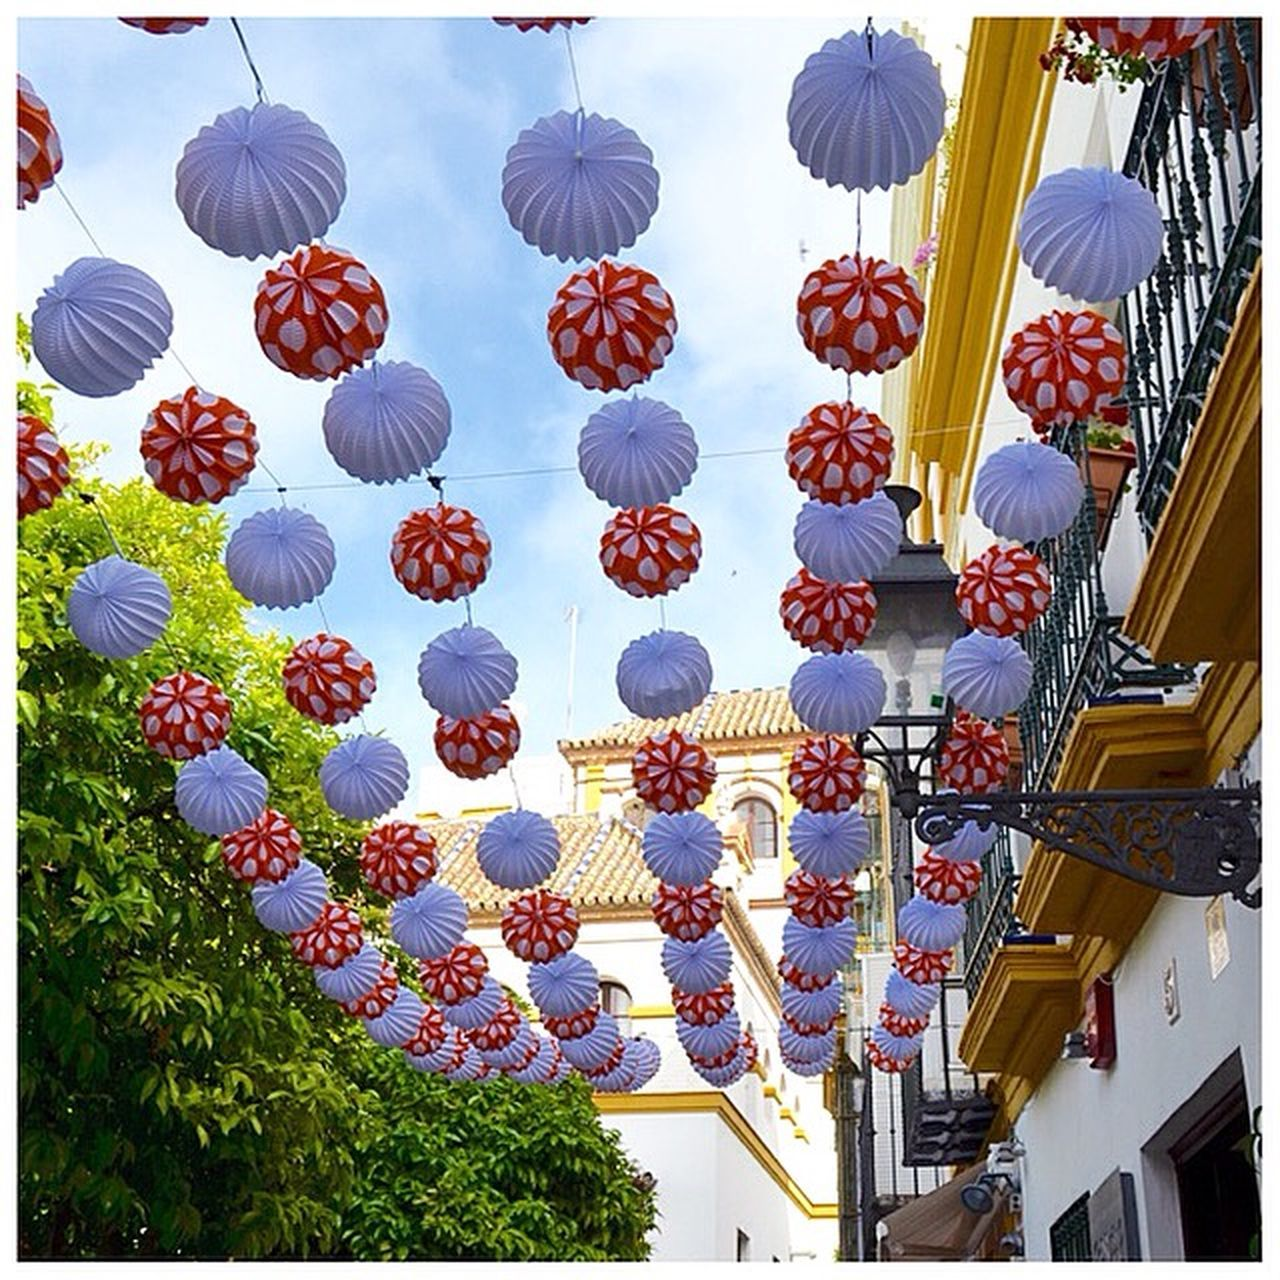 hanging, multi colored, lantern, no people, outdoors, day